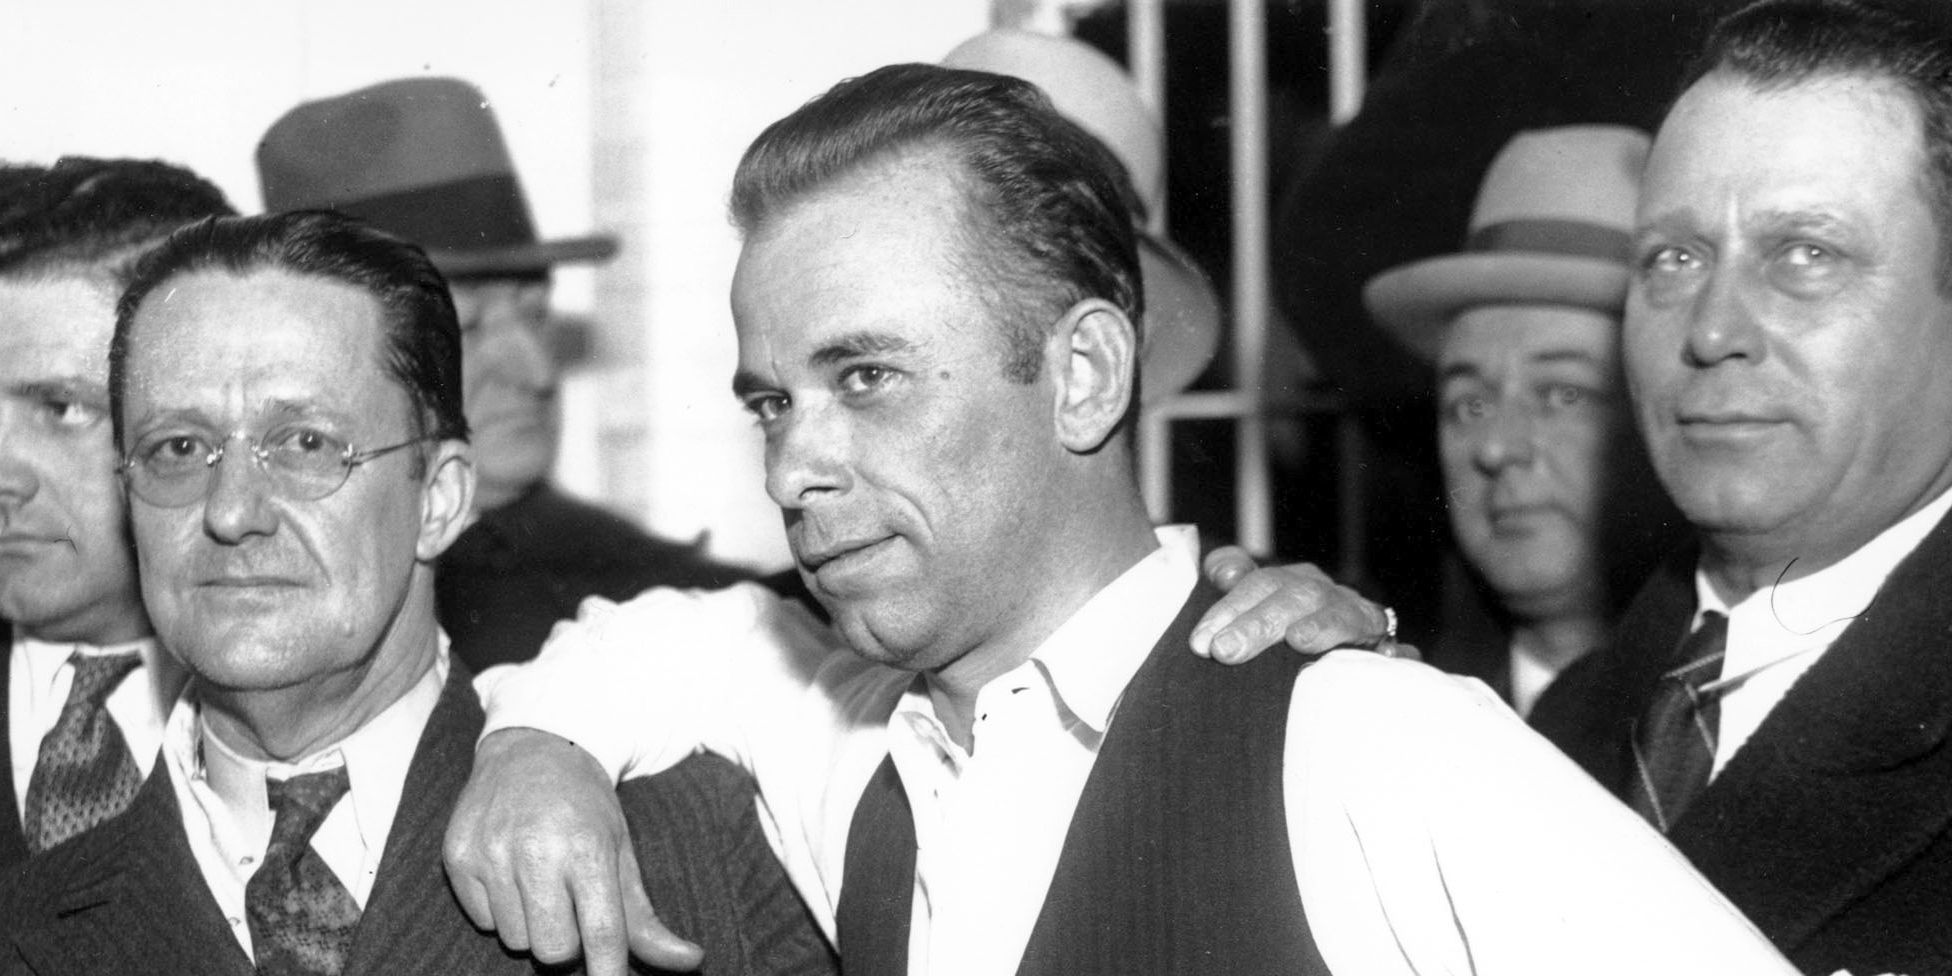 Indiana cemetery objects to John Dillinger exhumation plans